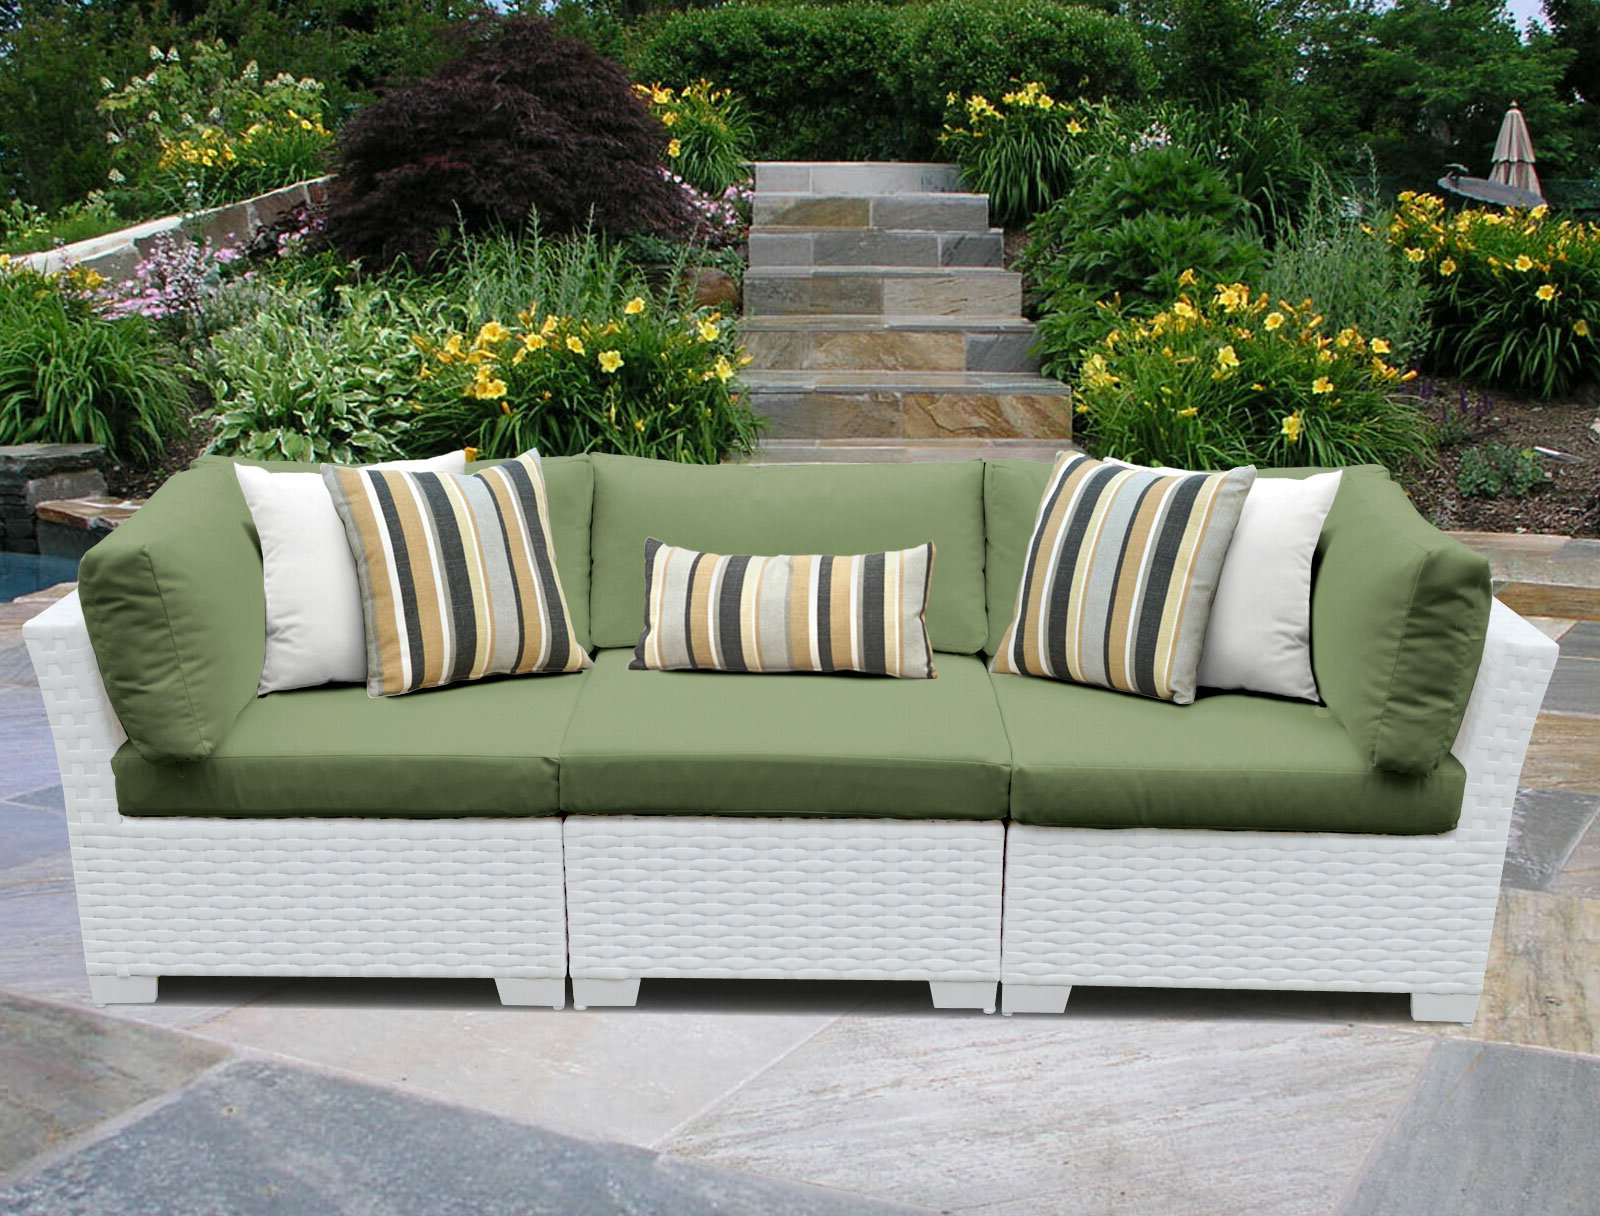 Burgoon Patio Sofa With Cushions For Newest Menifee Patio Sofas With Cushions (View 11 of 25)